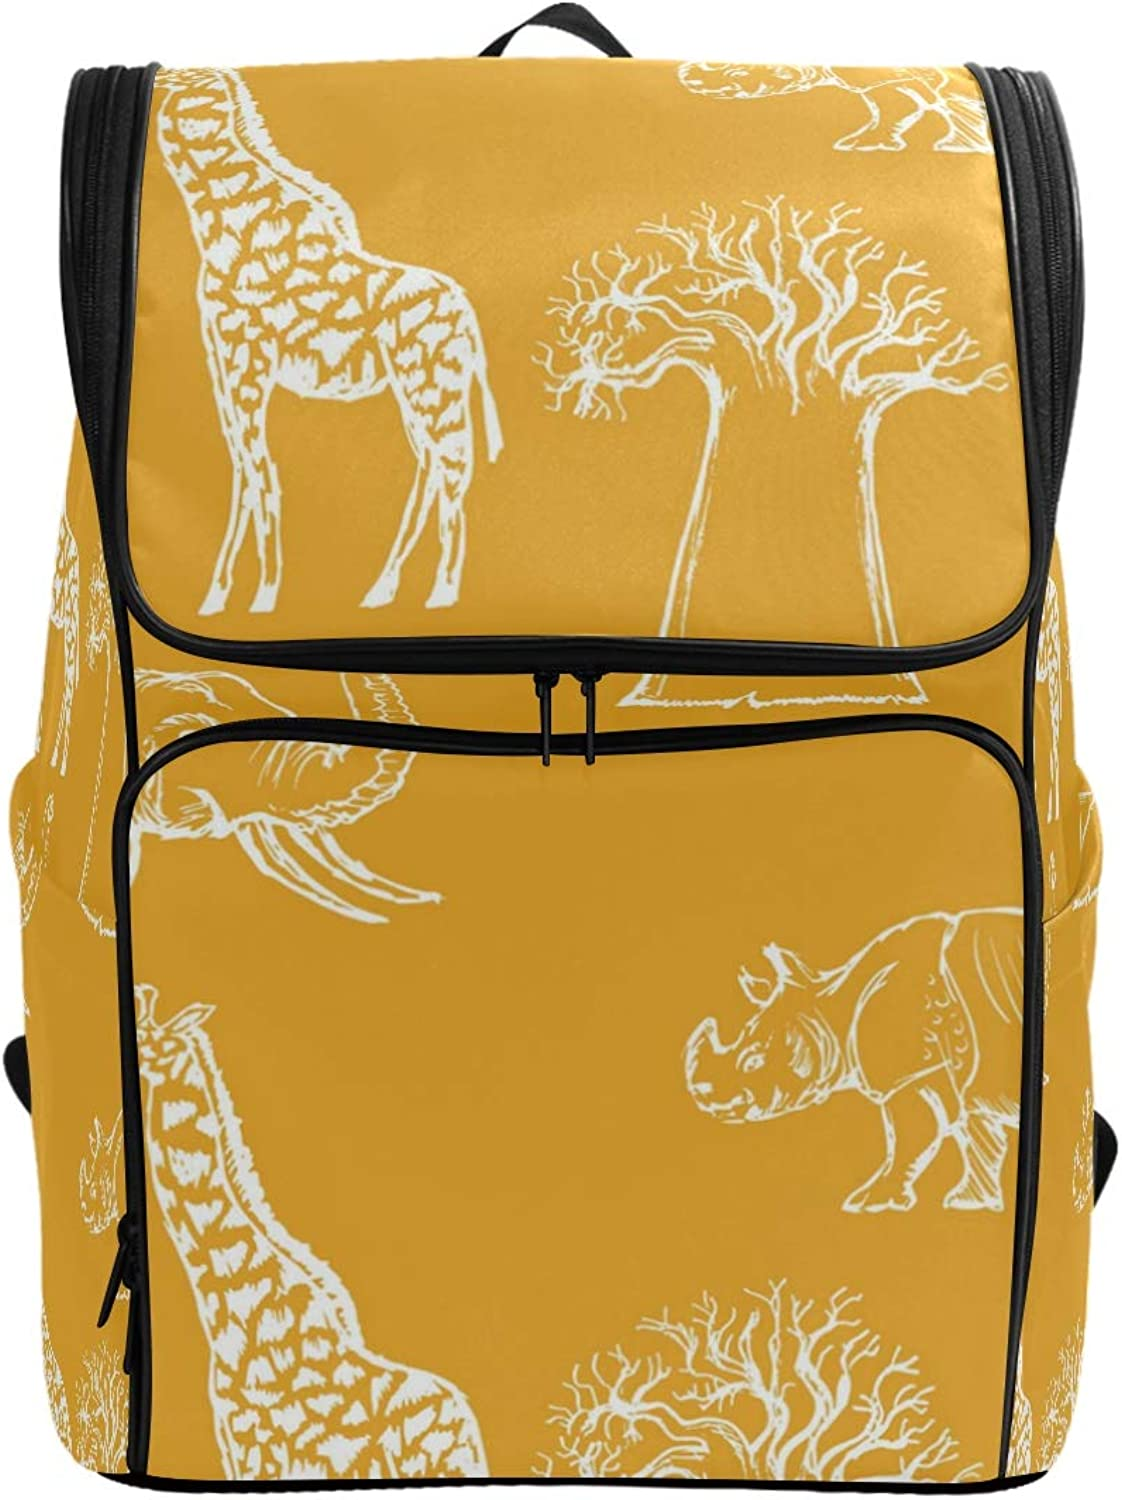 Pure Yellow Giraffe Decorations Laptop Backpack for Women Men,School Backpack Fashion Backpack Fits 15 inch Notebook